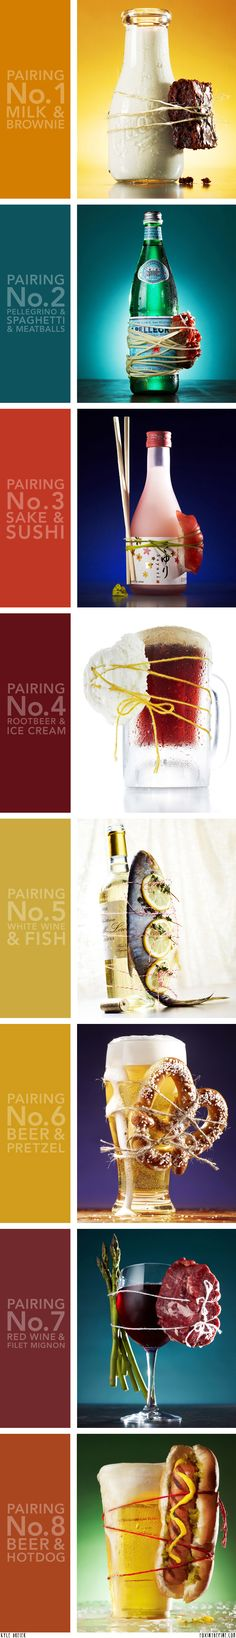 Food Pairing by Kyle Dreier (Photographer) [services for advertising photography Nashillve Kyle Dreier food stylist food Editorial corporate clientele commercial]